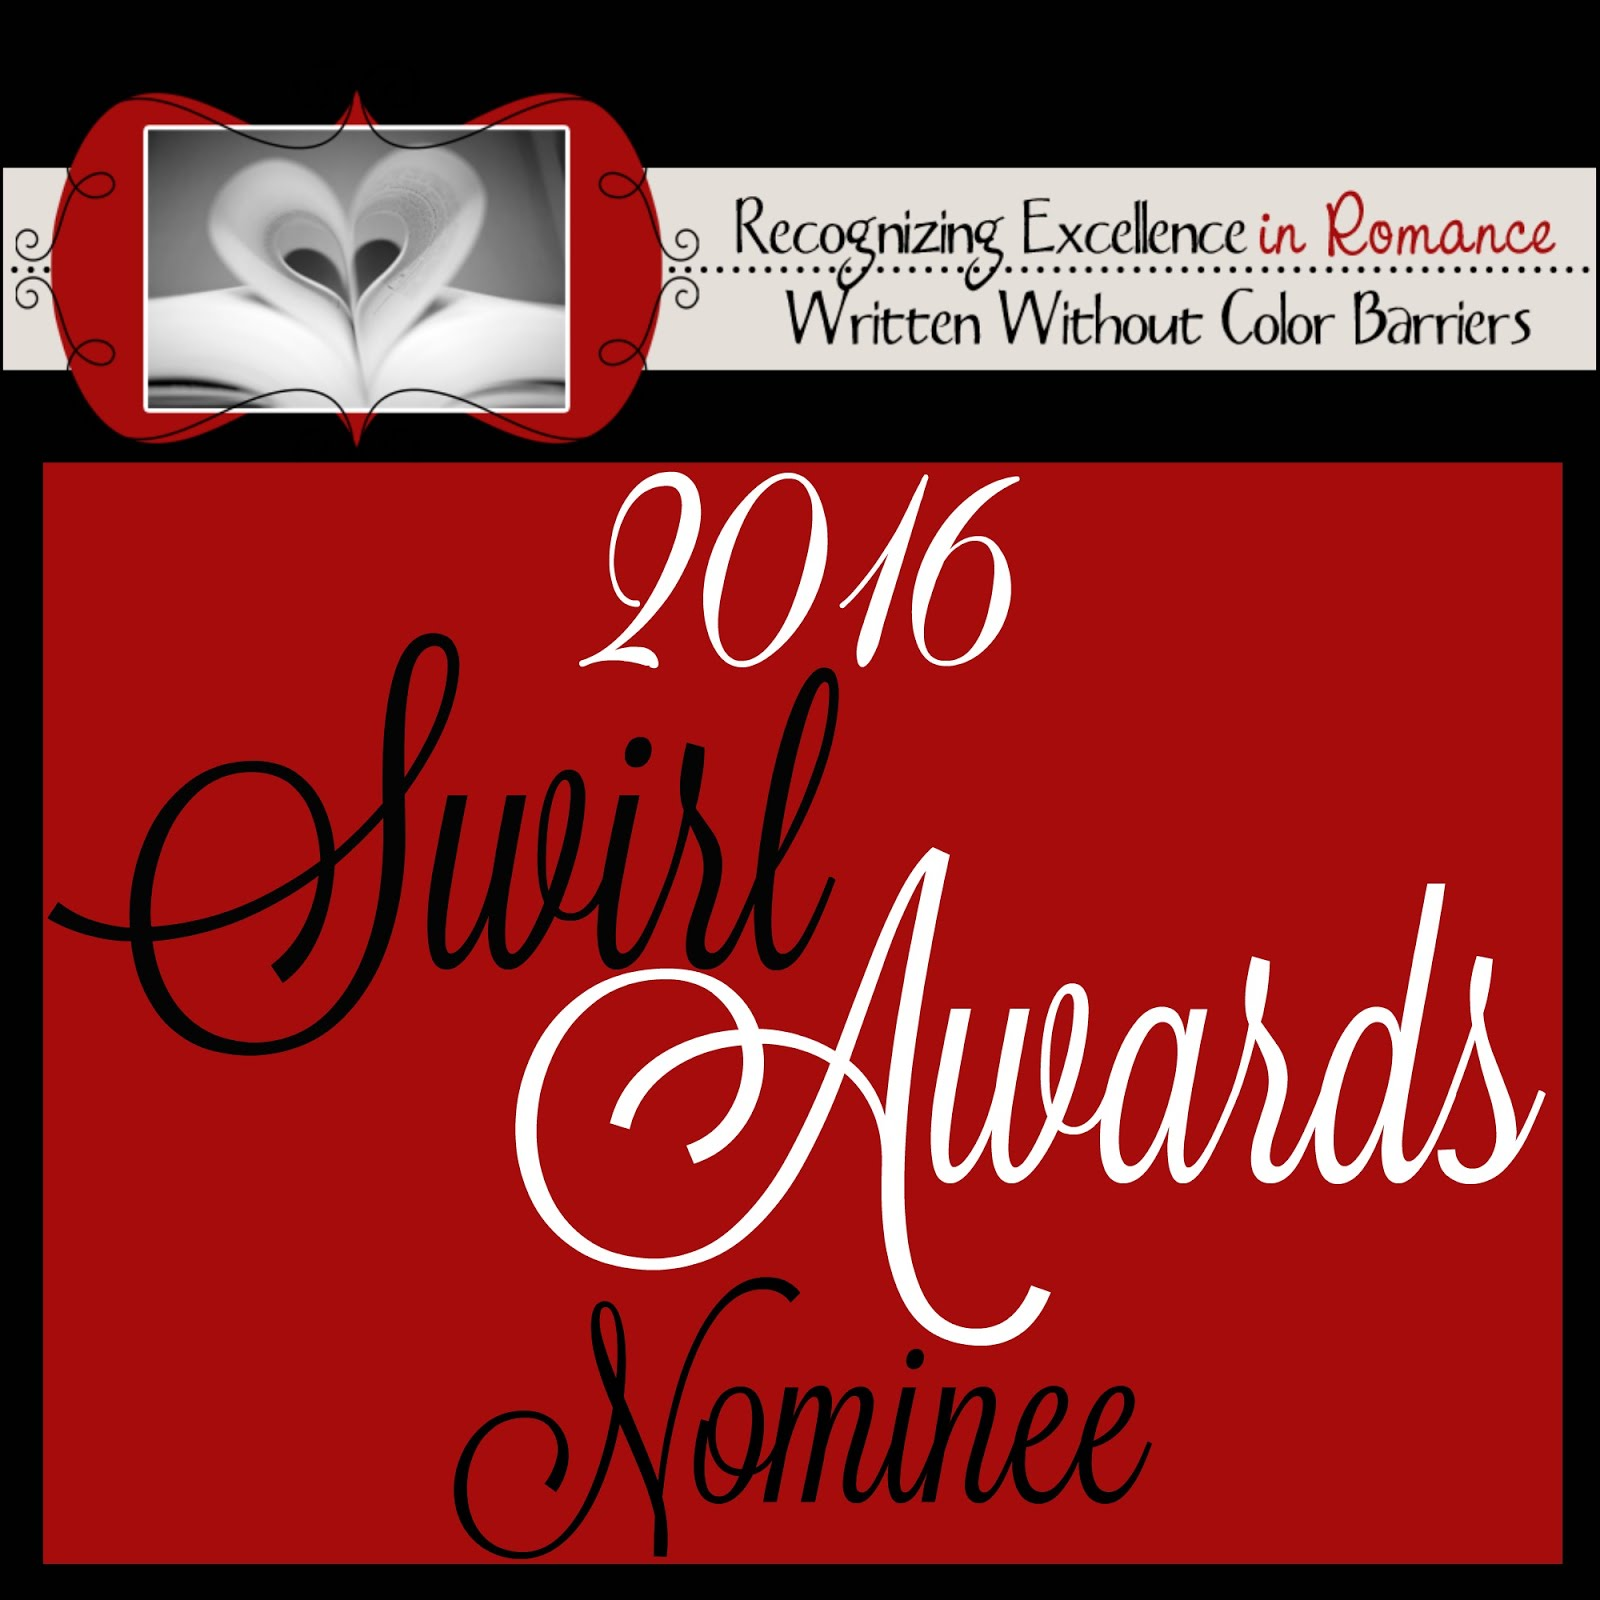 We're nominees for the Swirl Awards